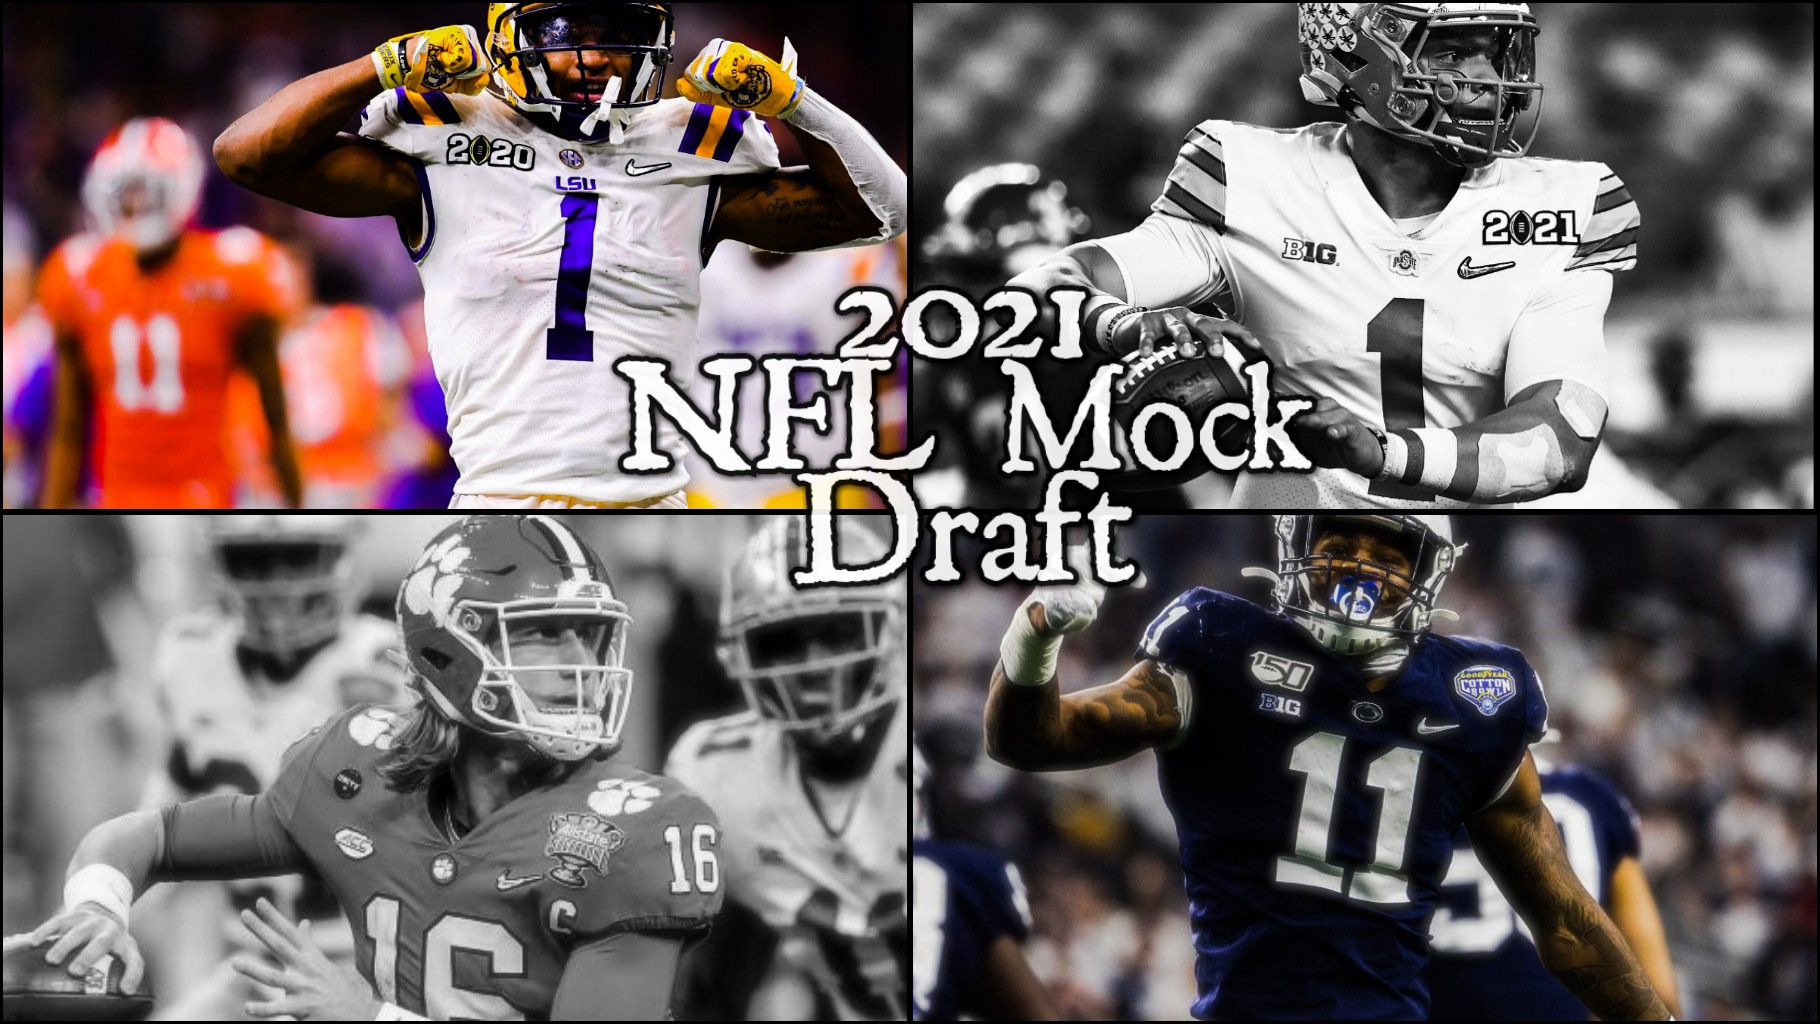 2021 NFL Mock Draft 4.0: The Top NFL Prospects Available for Round 1